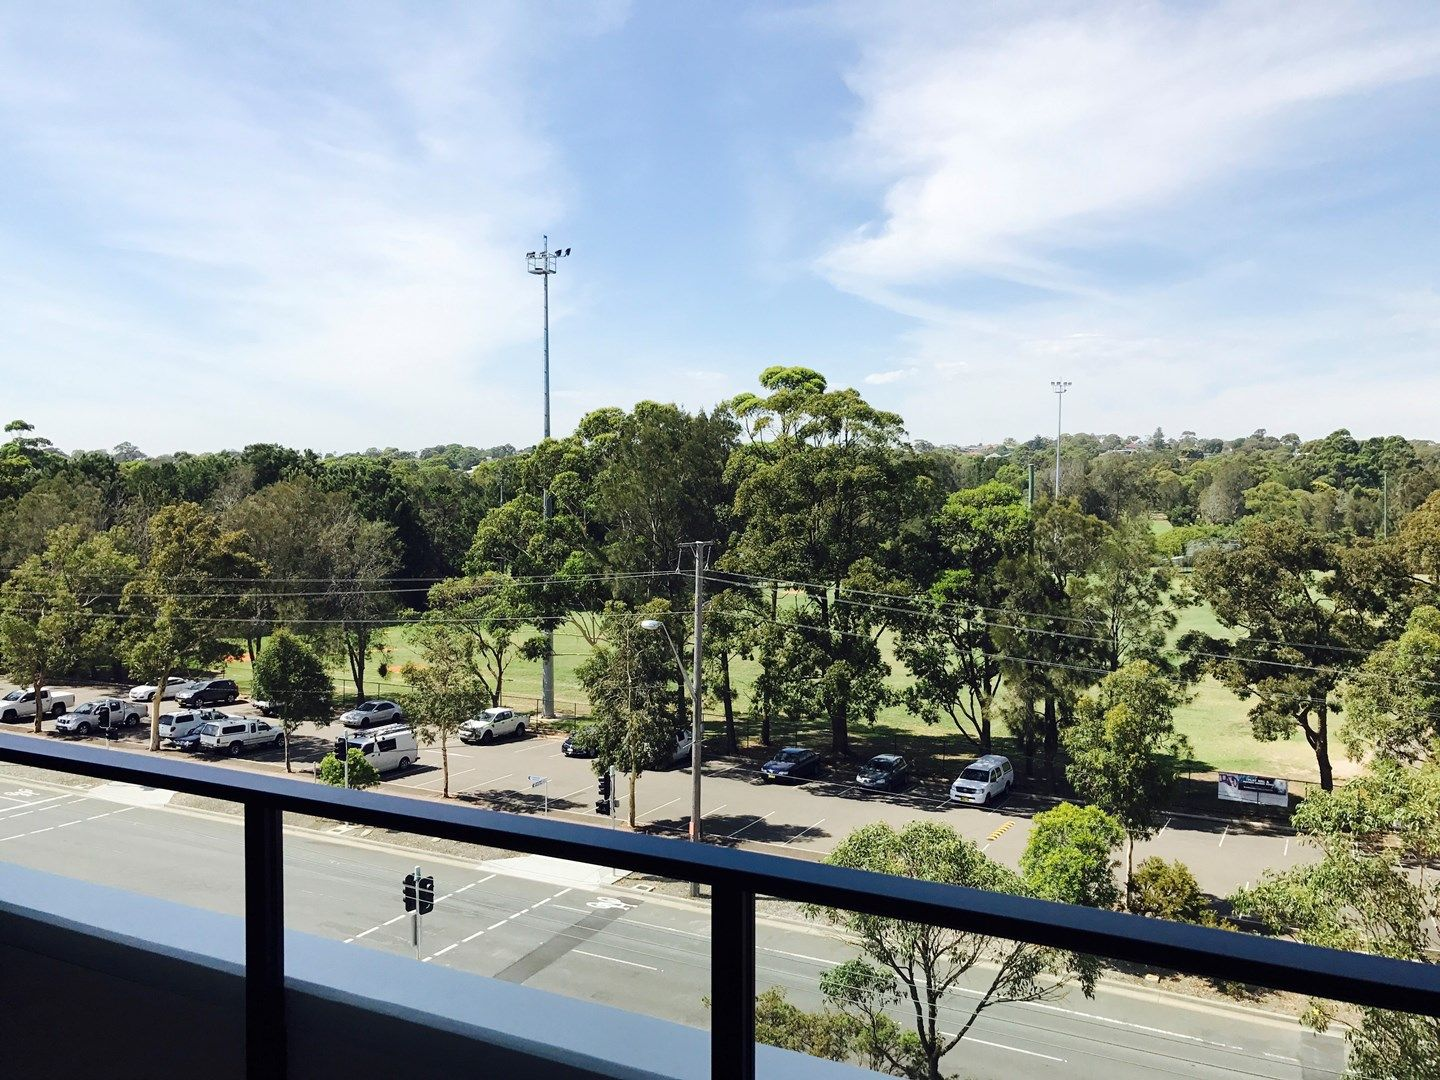 308/475 Captain Cook  Drive, Woolooware NSW 2230, Image 0